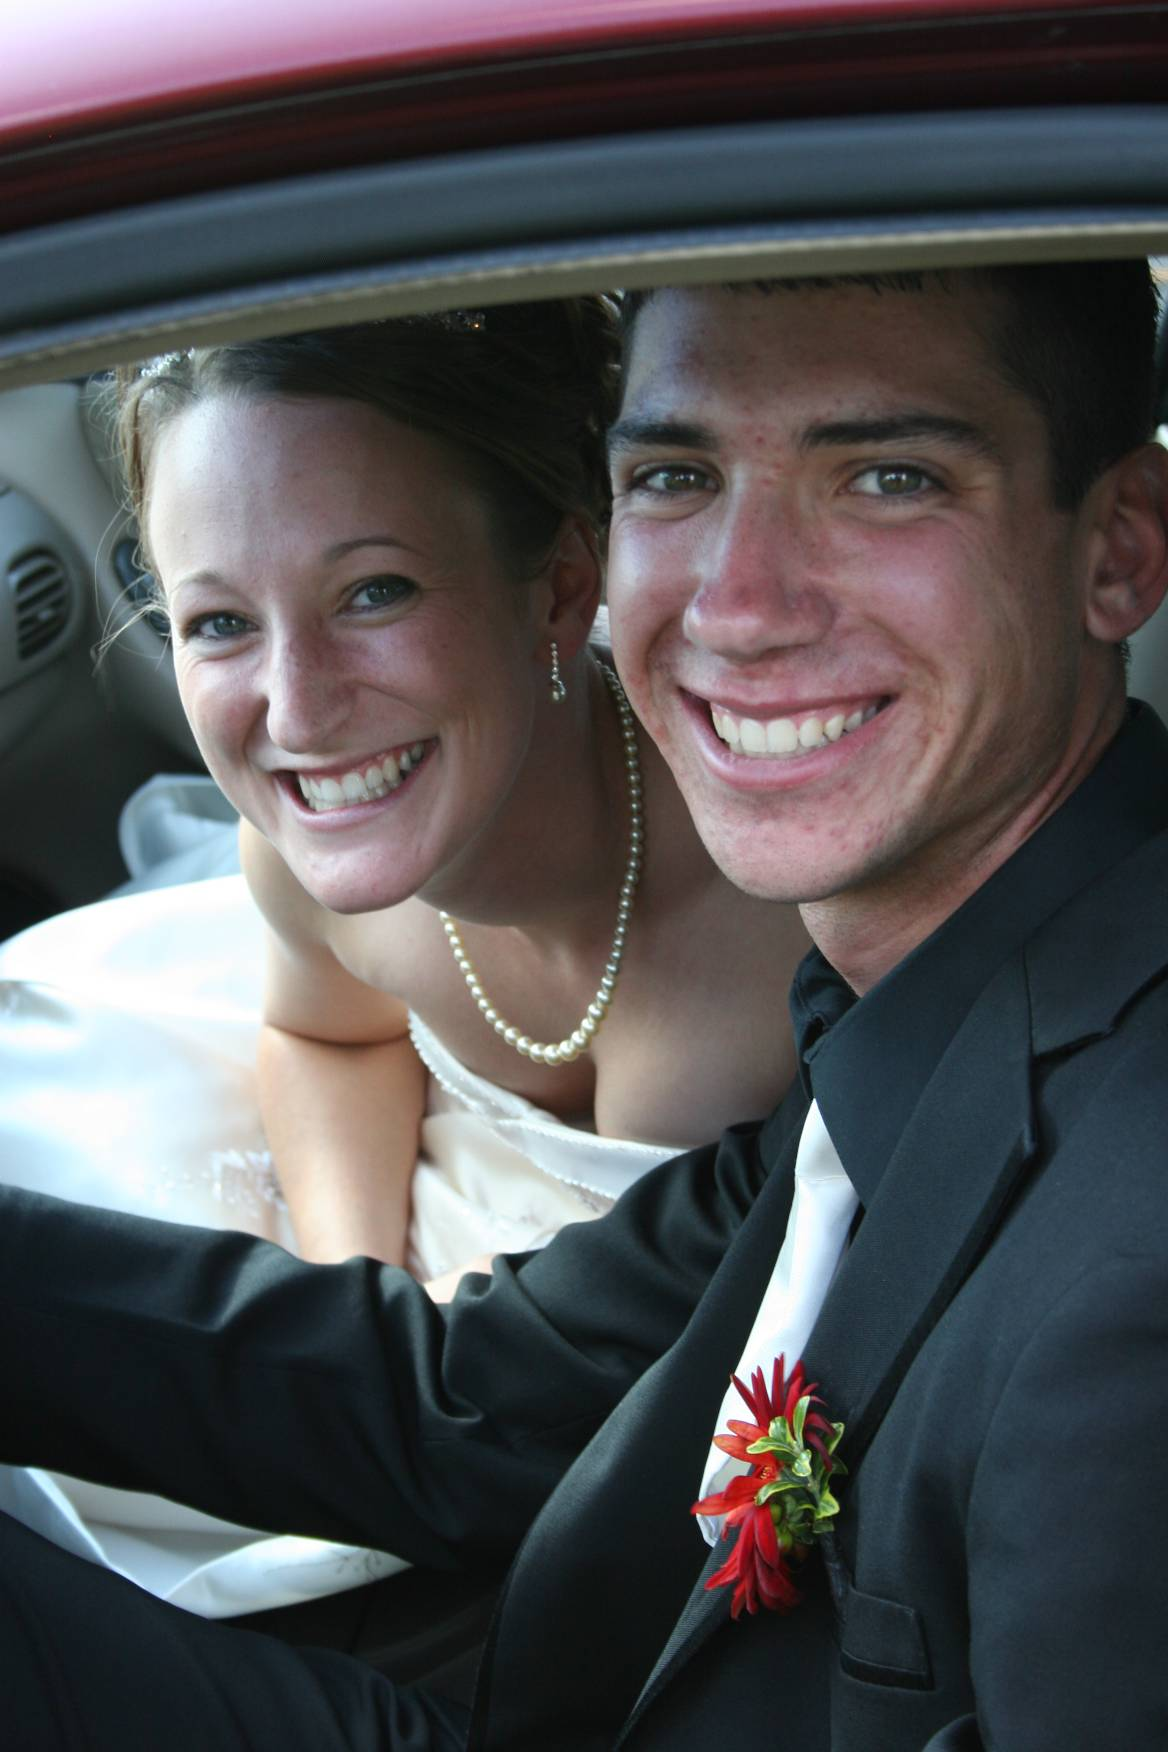 Leaving the church in the bridal car, Kristina and Corey.